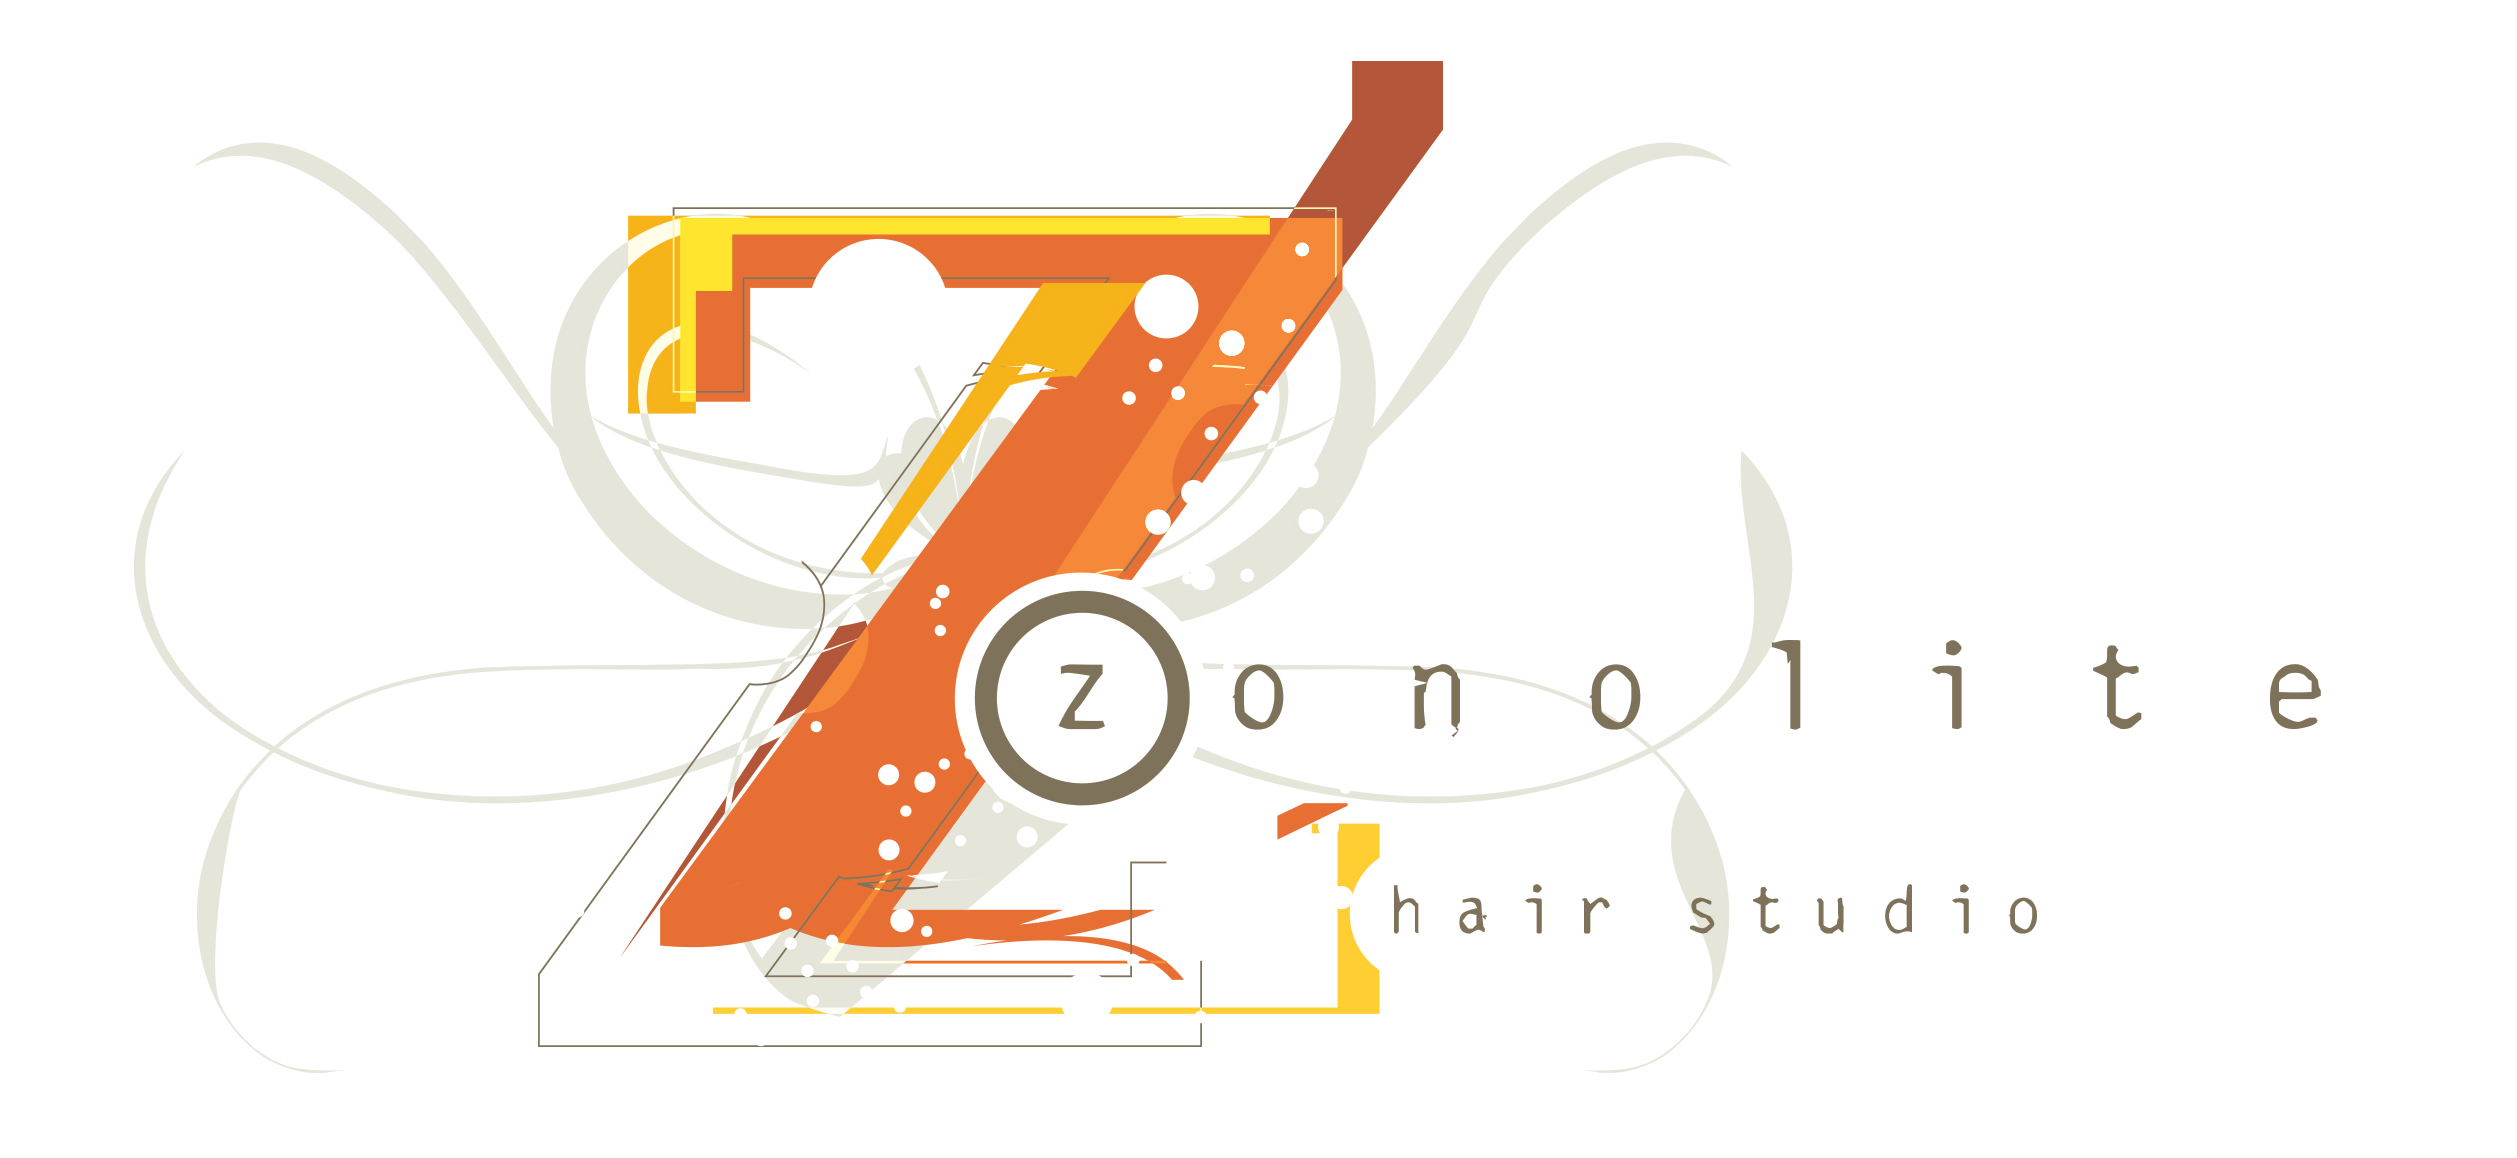 Zonolite Hair Studio - Atlanta Georgia